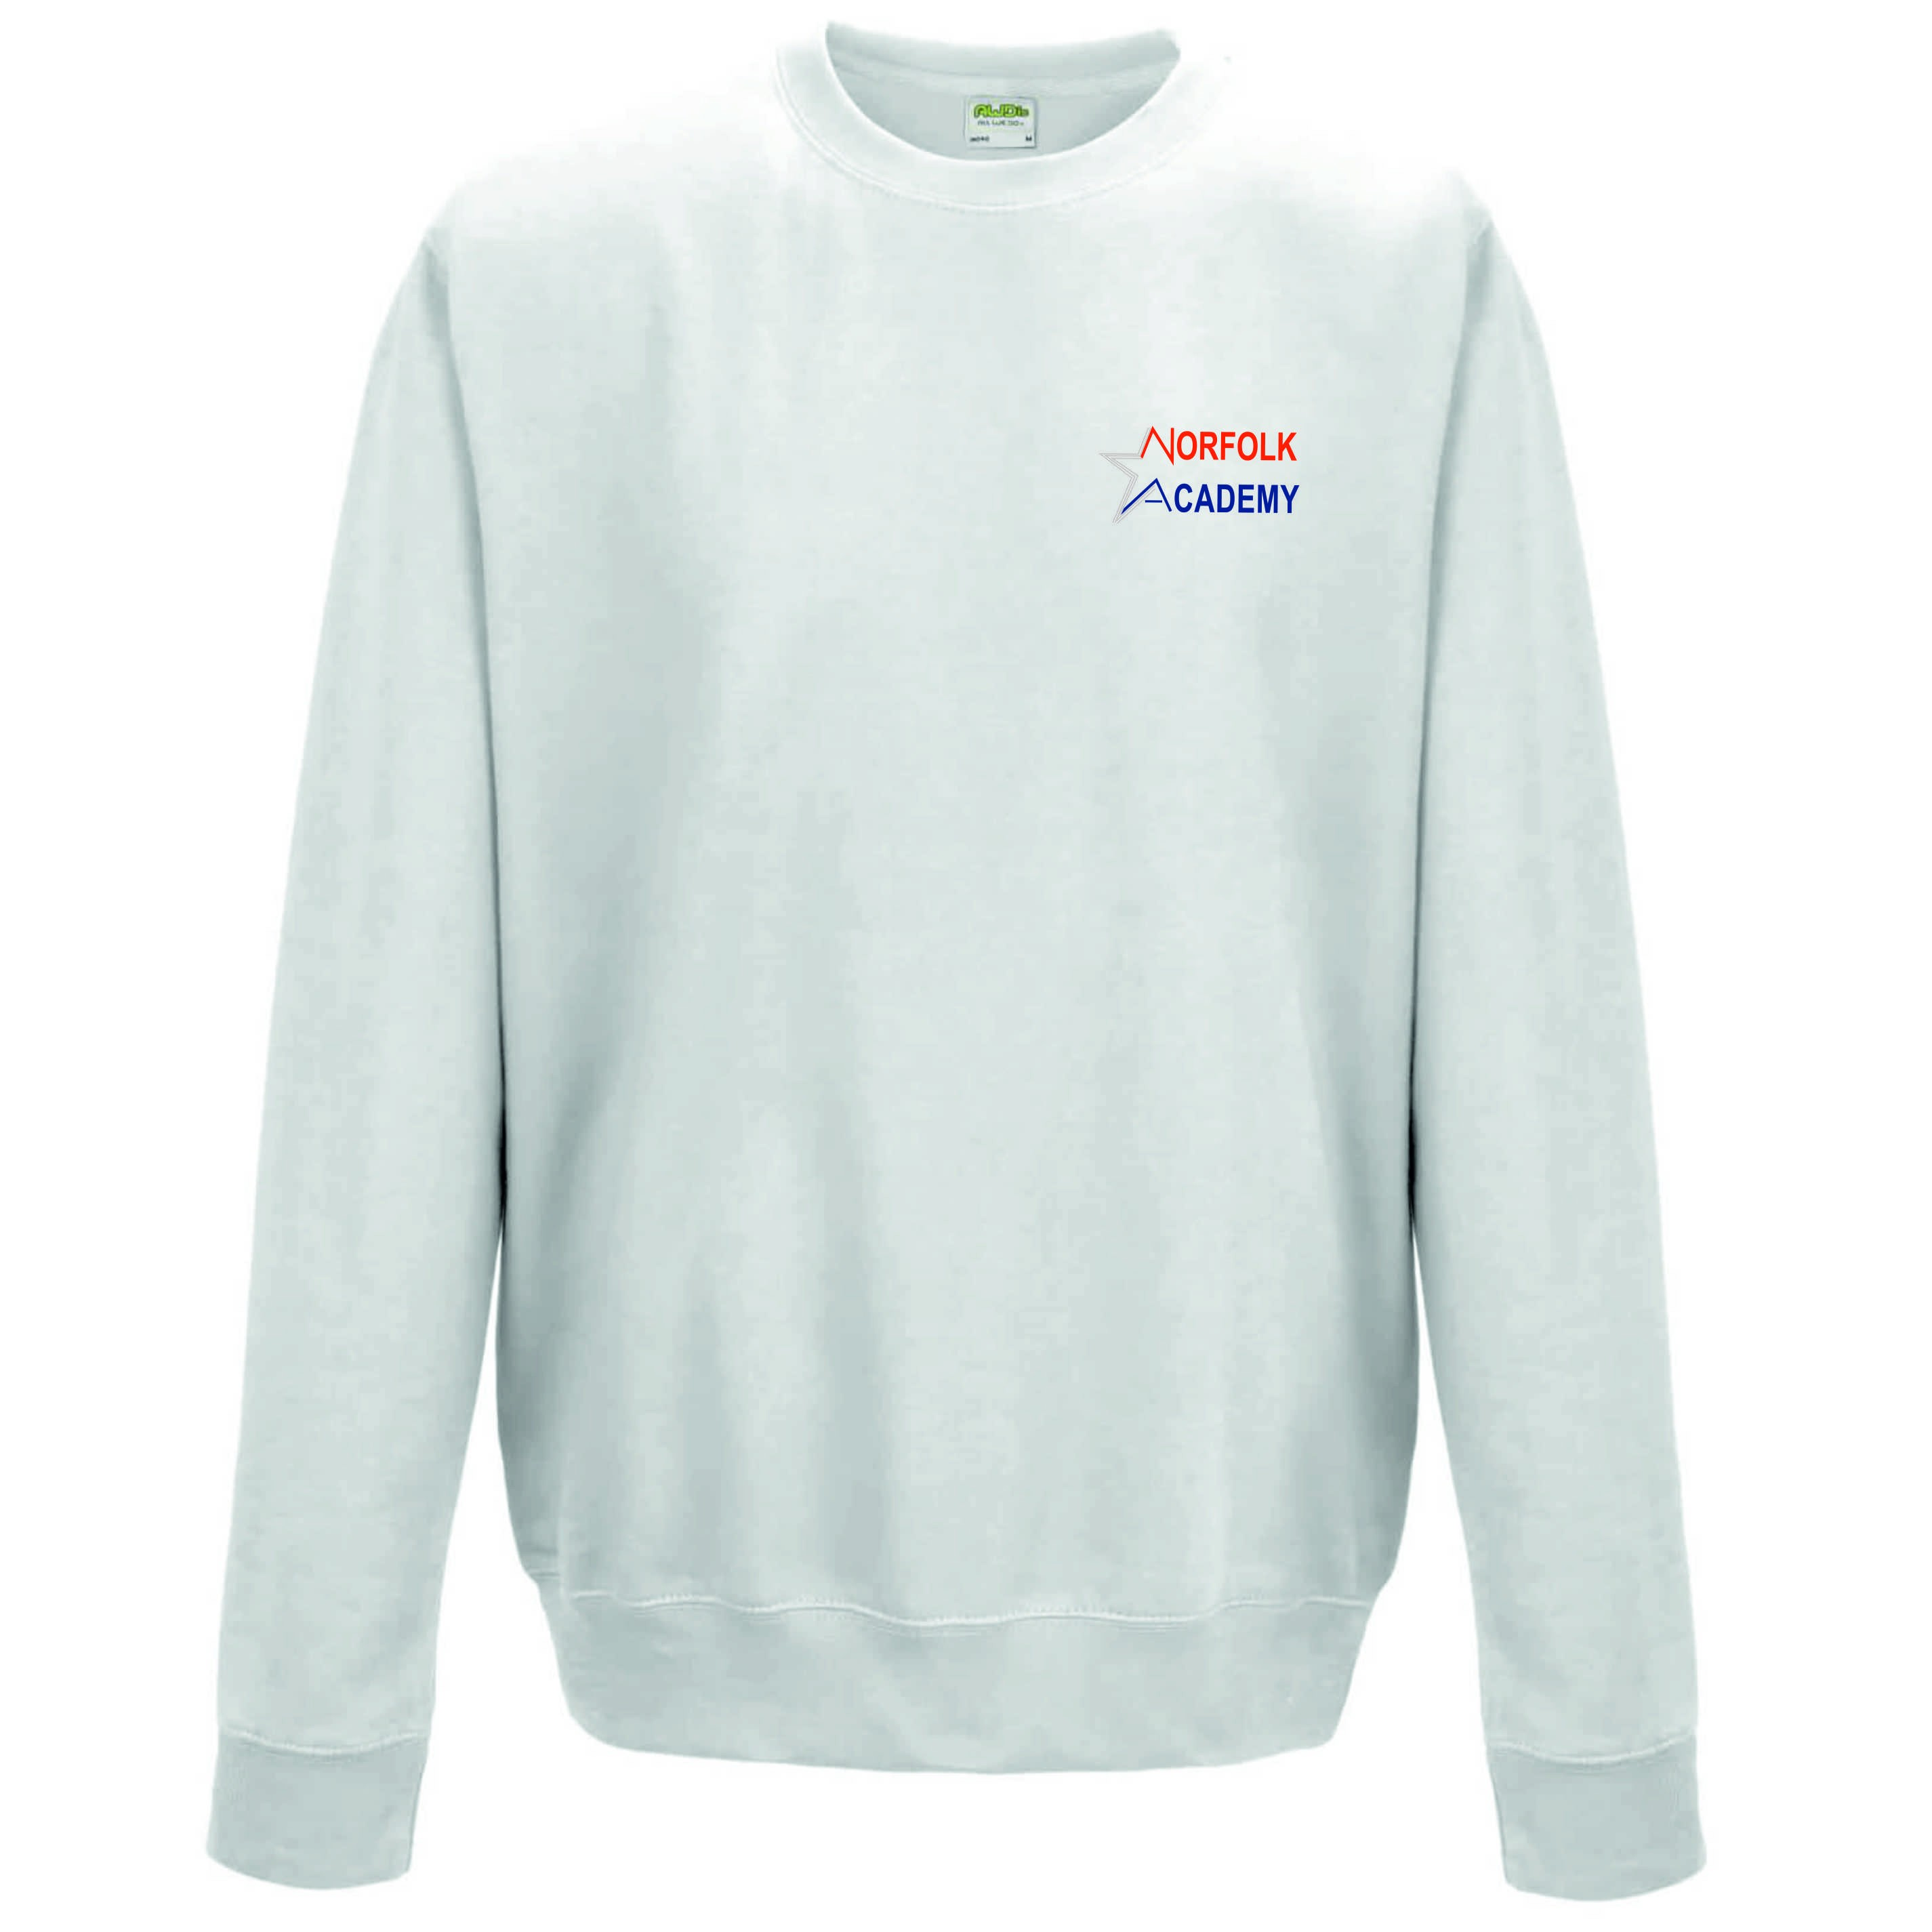 The Norfolk Academy of Gymnastics Adult Sweatshirt